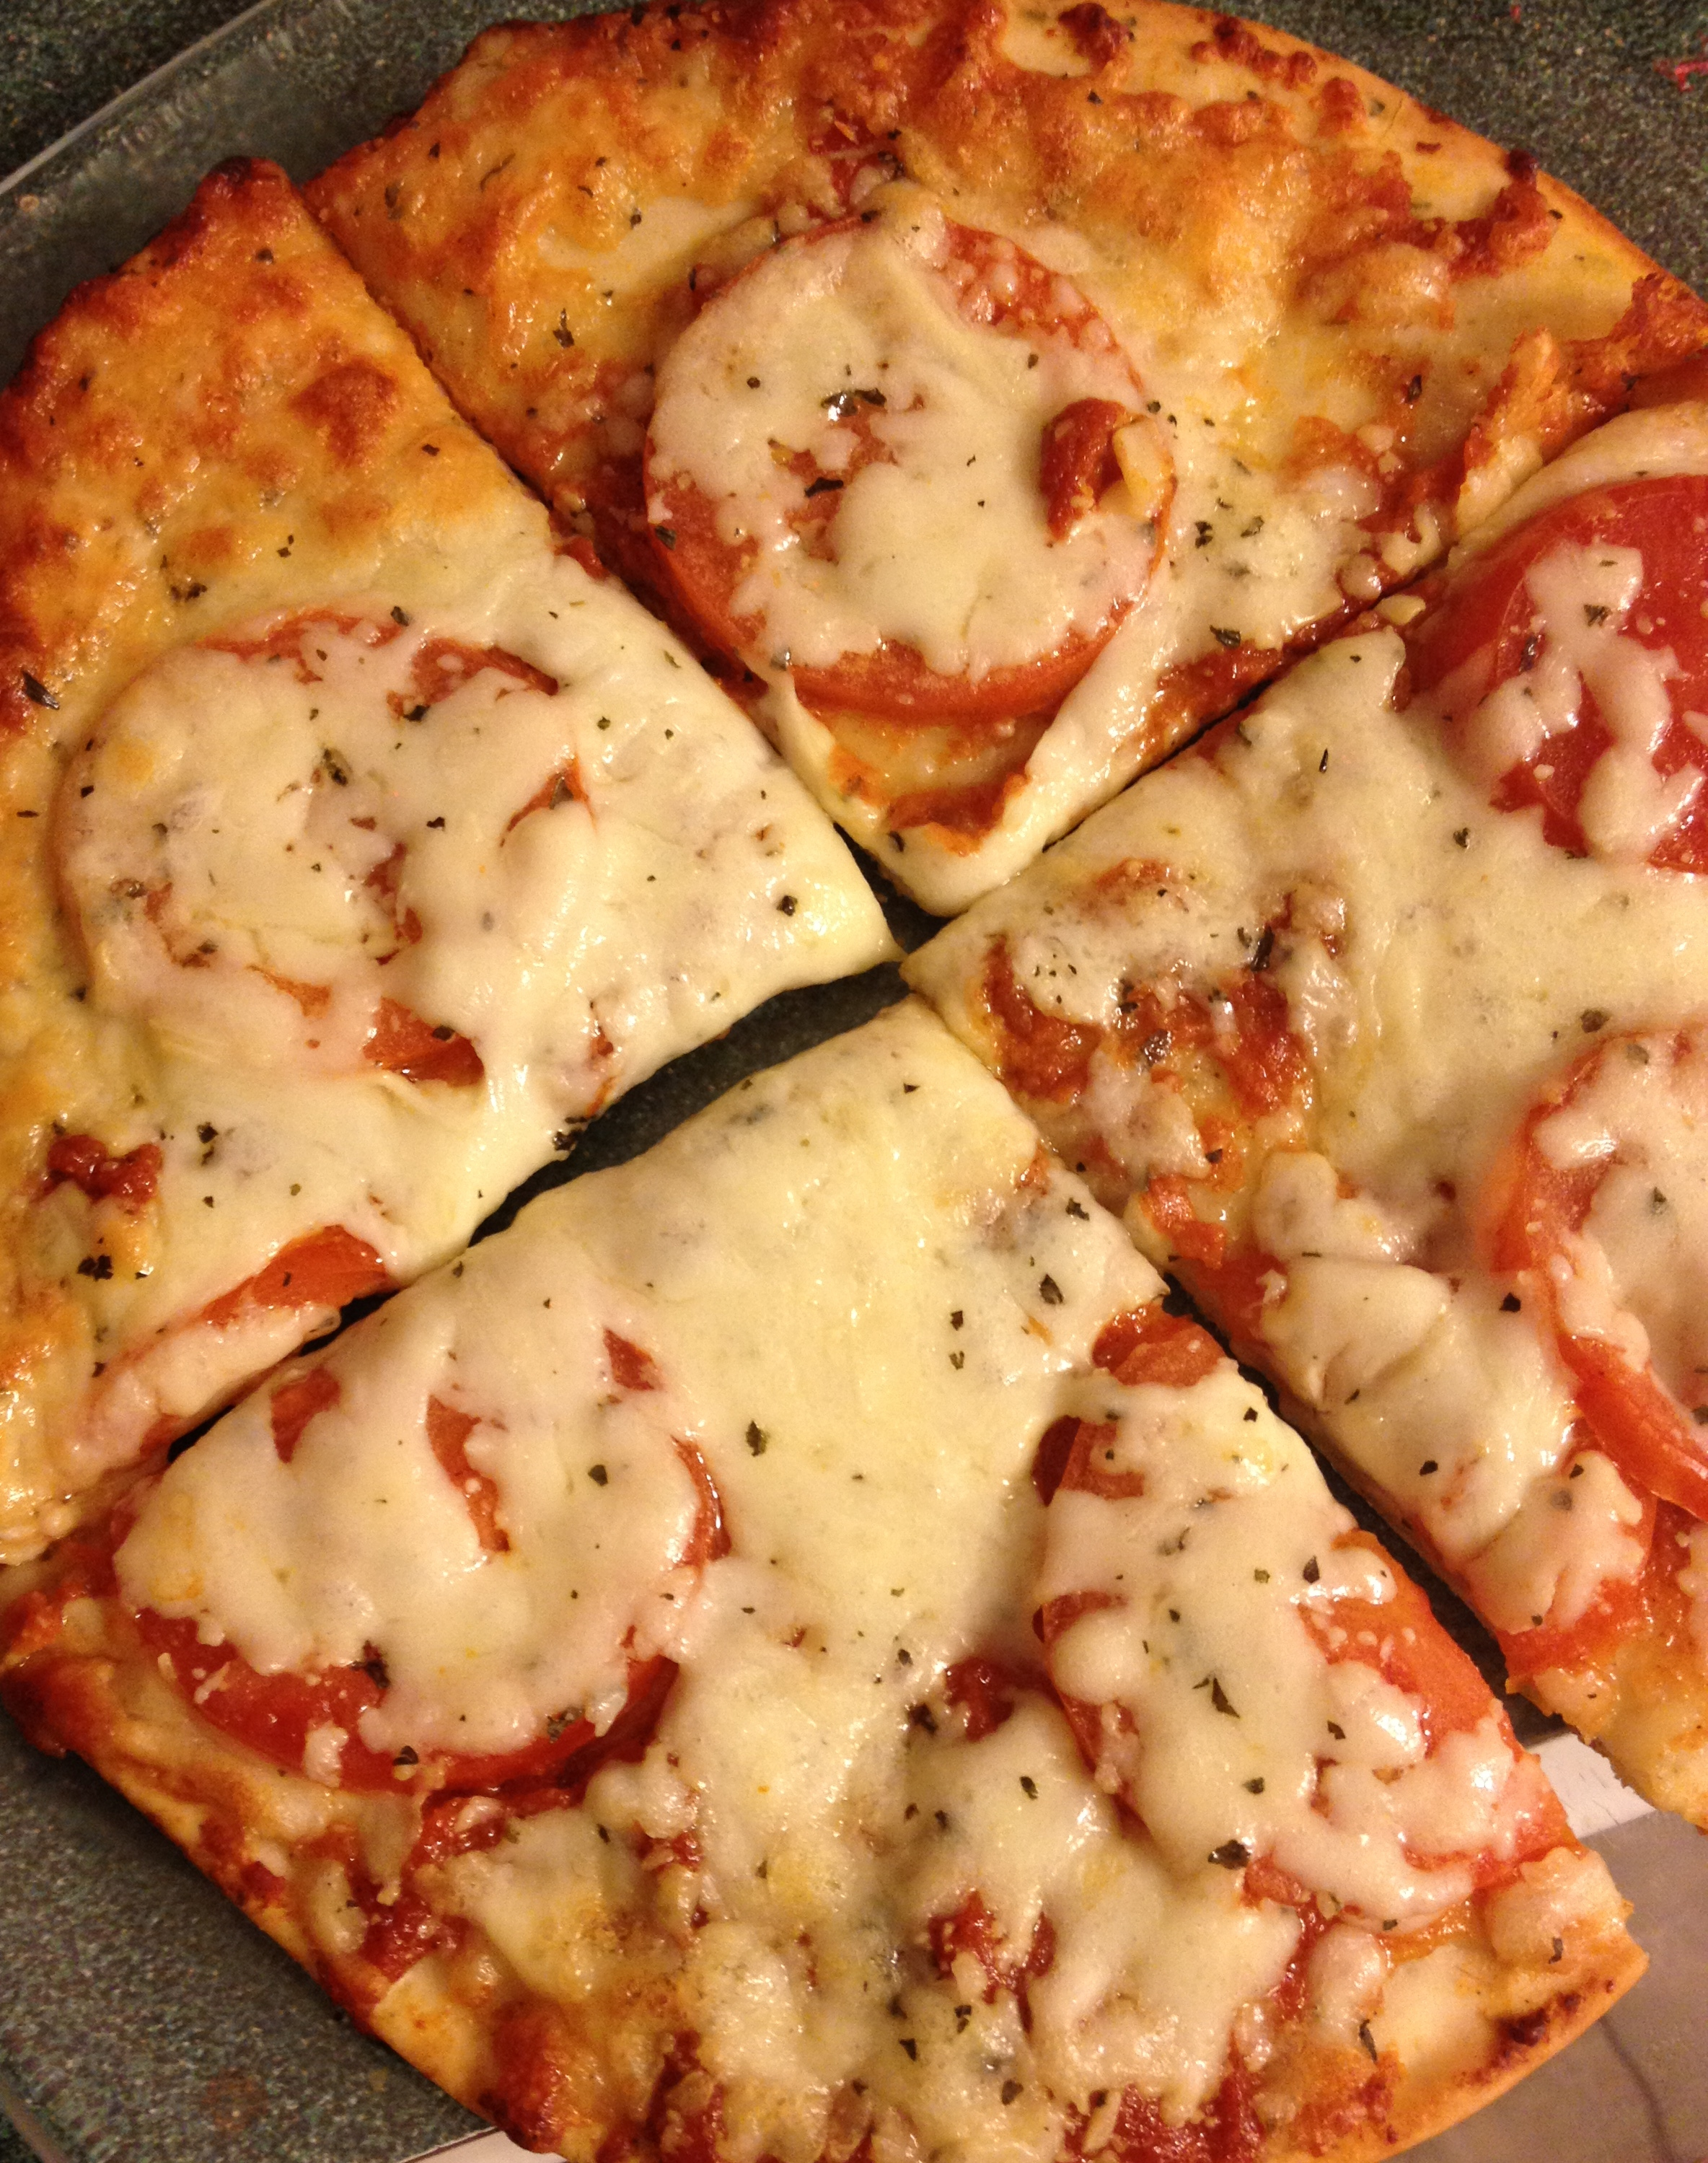 frozen pizza and other slices of Table 87 coal oven pizza is the first in brooklyn to offer coal oven pizza by the  slice  select below for either our restaurant or frozen pizzas we ship pizza.